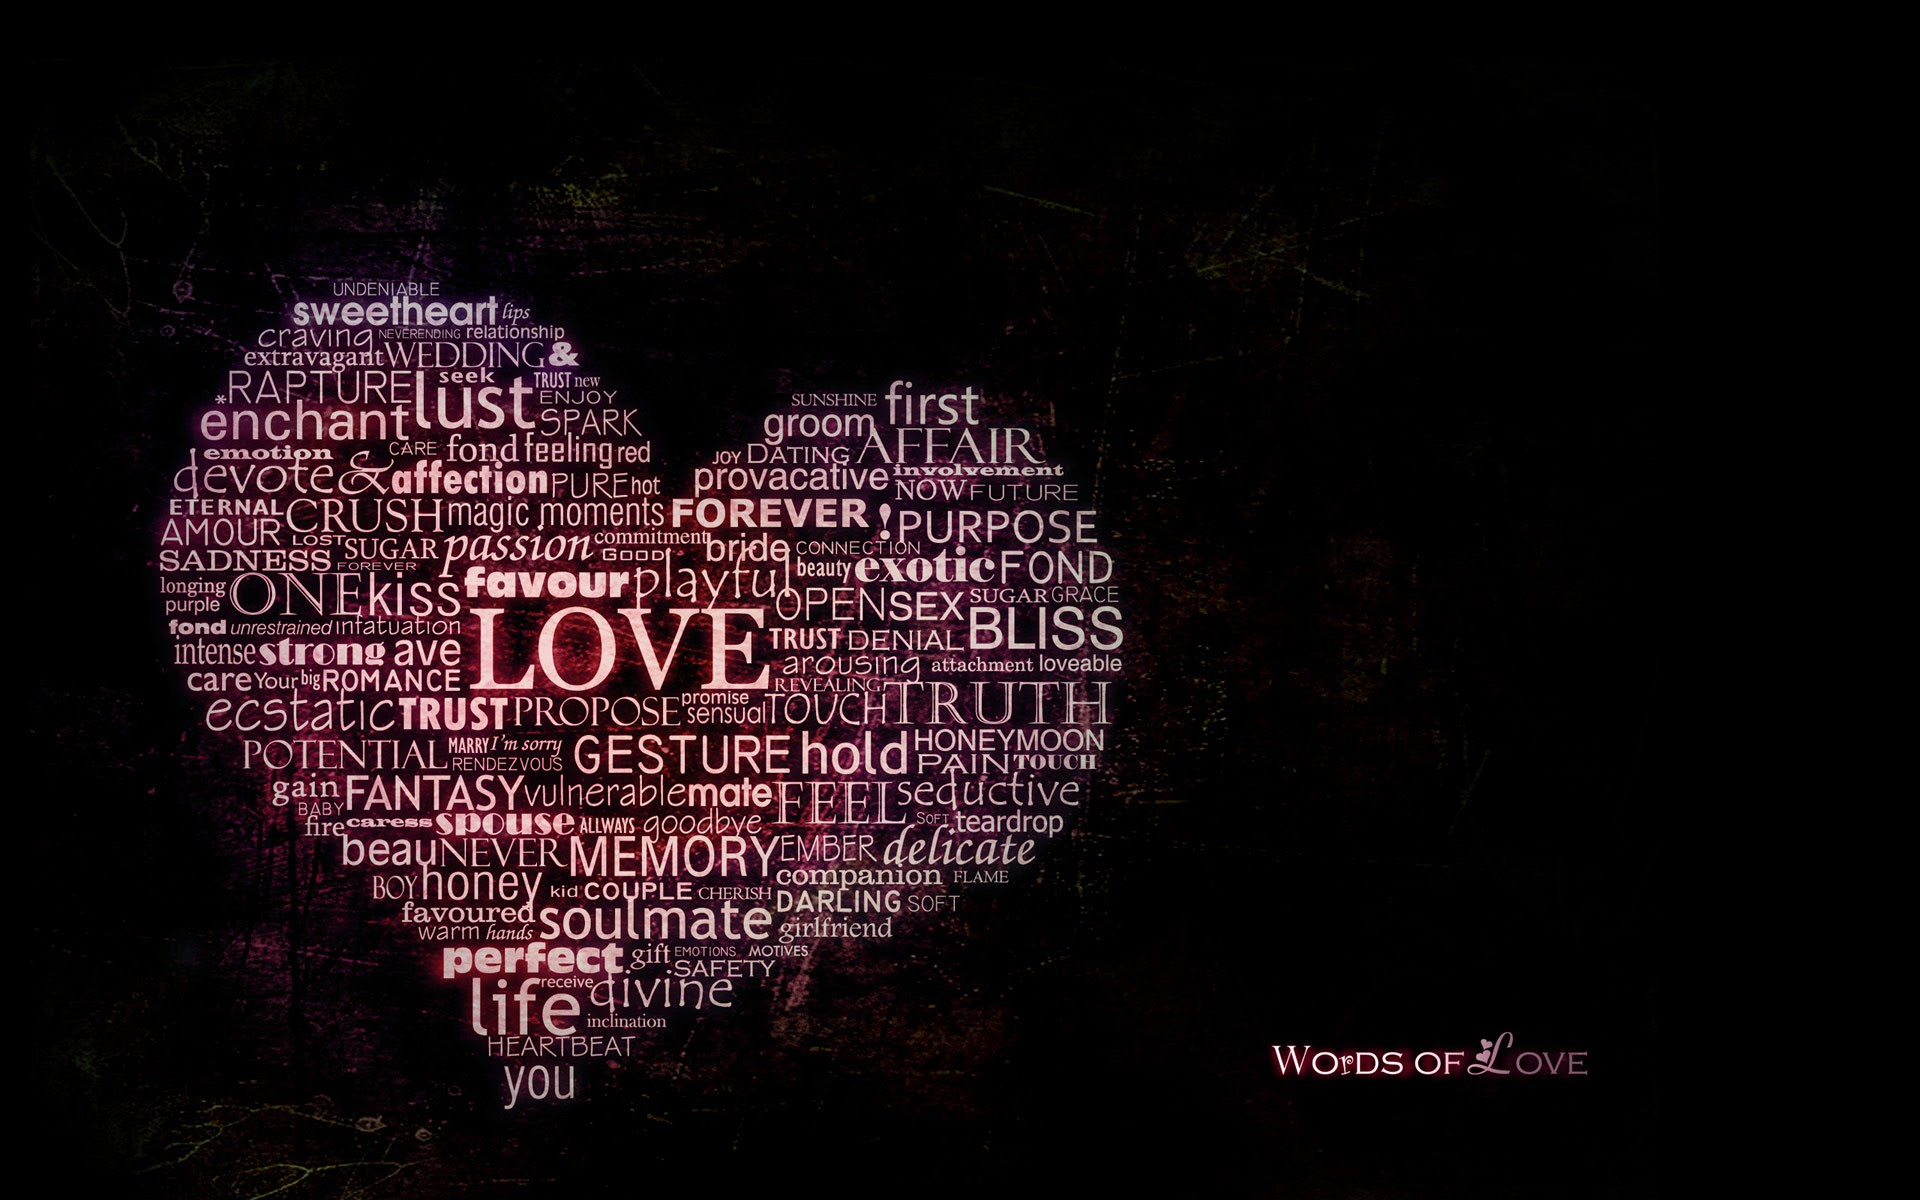 Love Images Love Quotes Wallpaper Hd Wallpaper And Background Photos